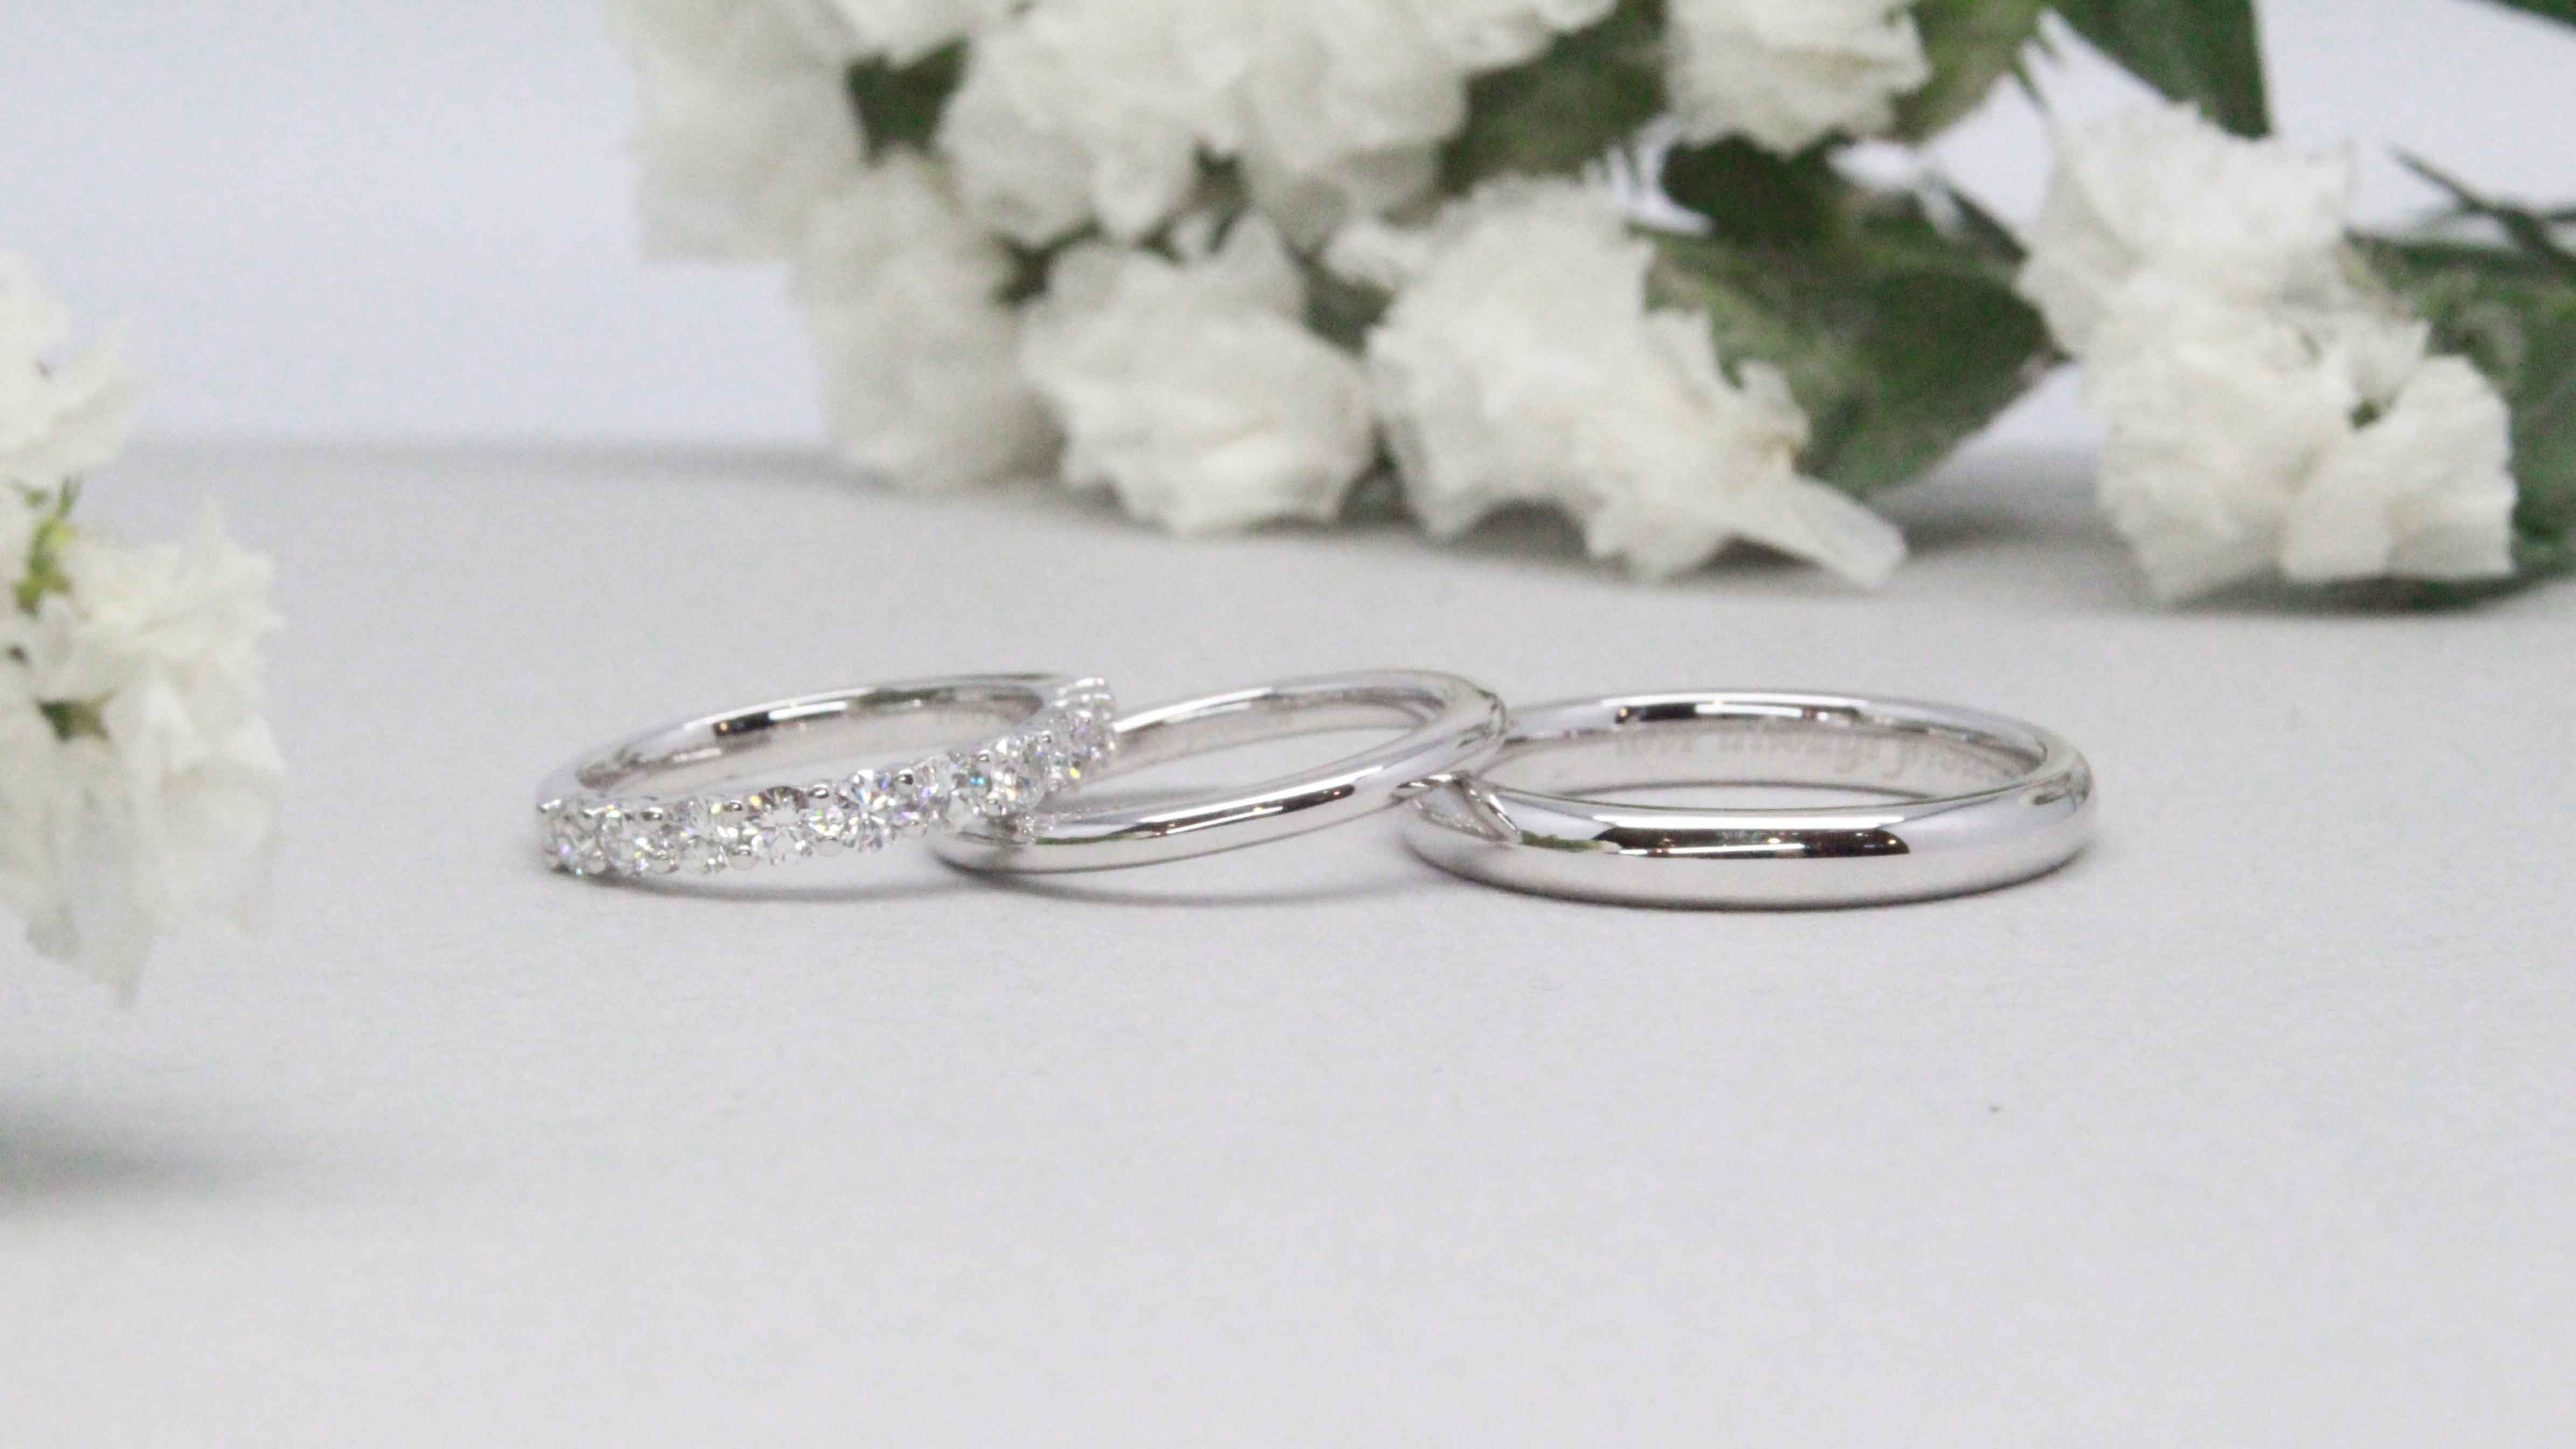 Wedding bands in Platinum, not the usual 18k 750 gold. Custom made Wedding bands